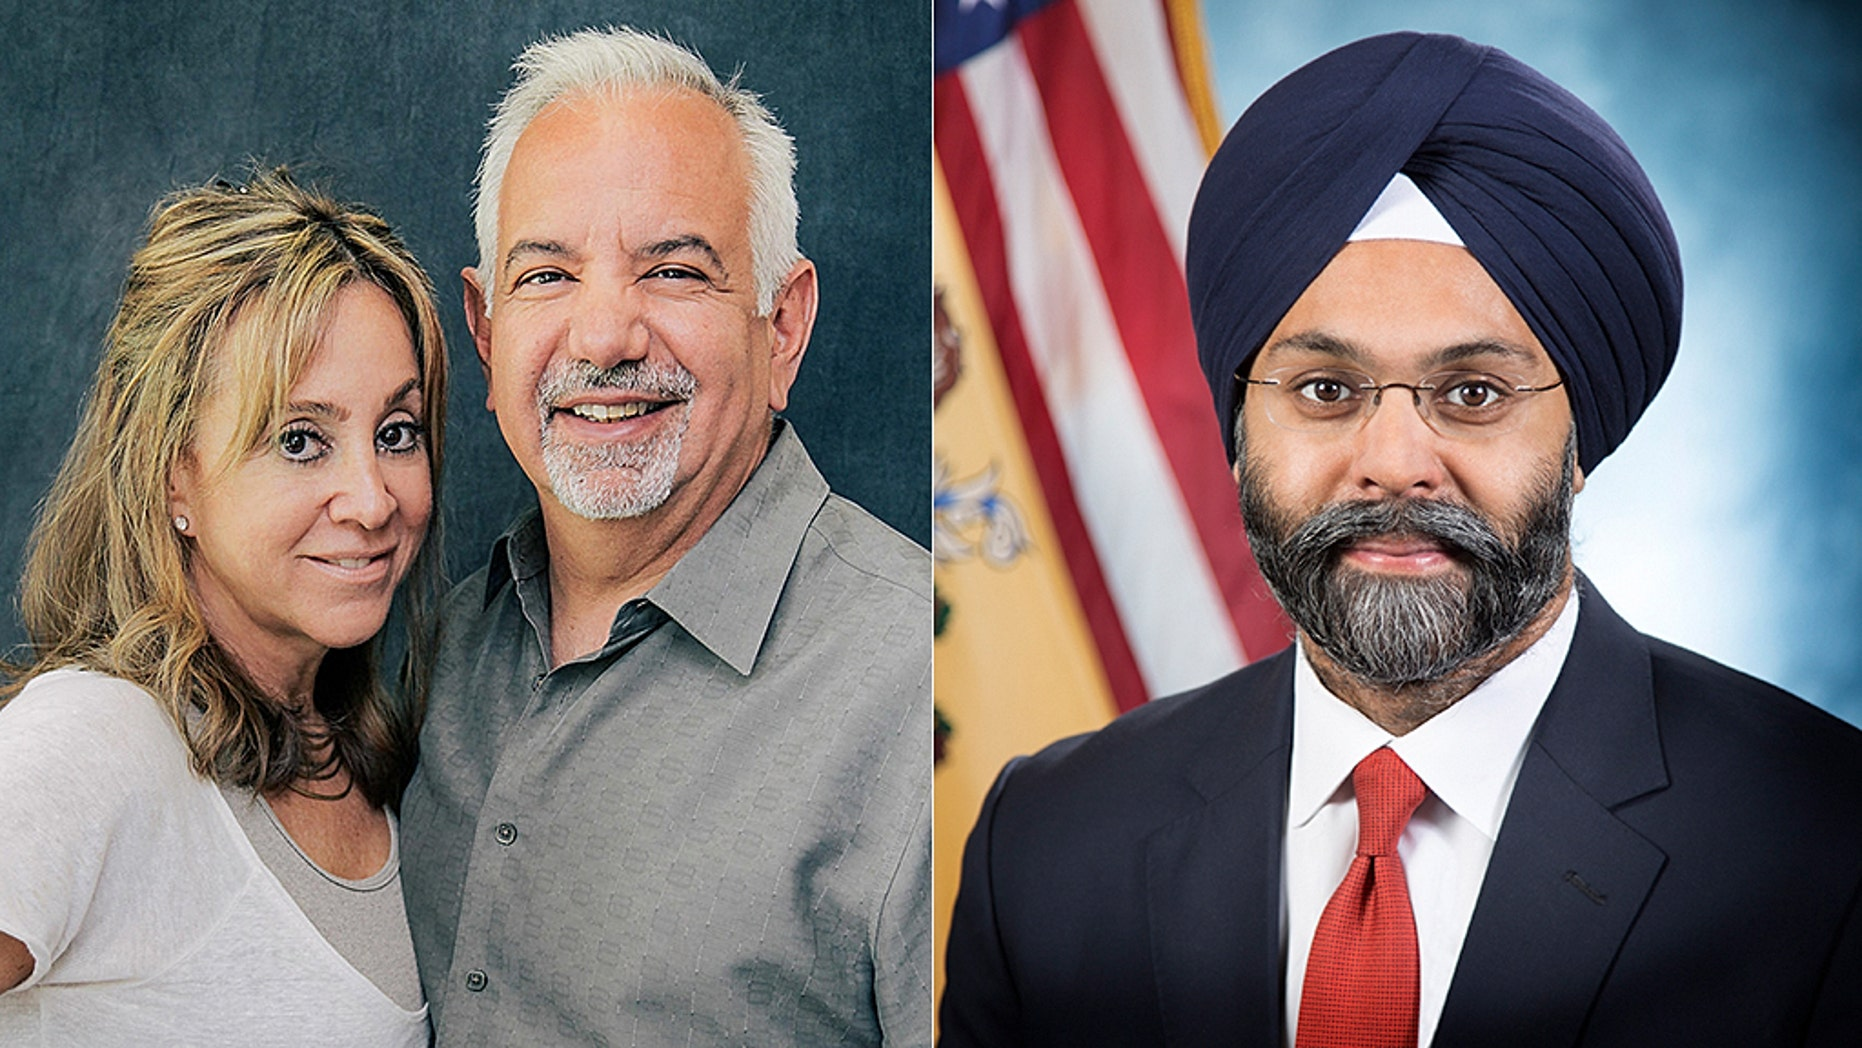 New Jersey Radio Hosts Dennis Malloy and Judi Franco, left, were taken off air after calling New Jersey Attorney General Gurbir Grewal 'Turban Man.'